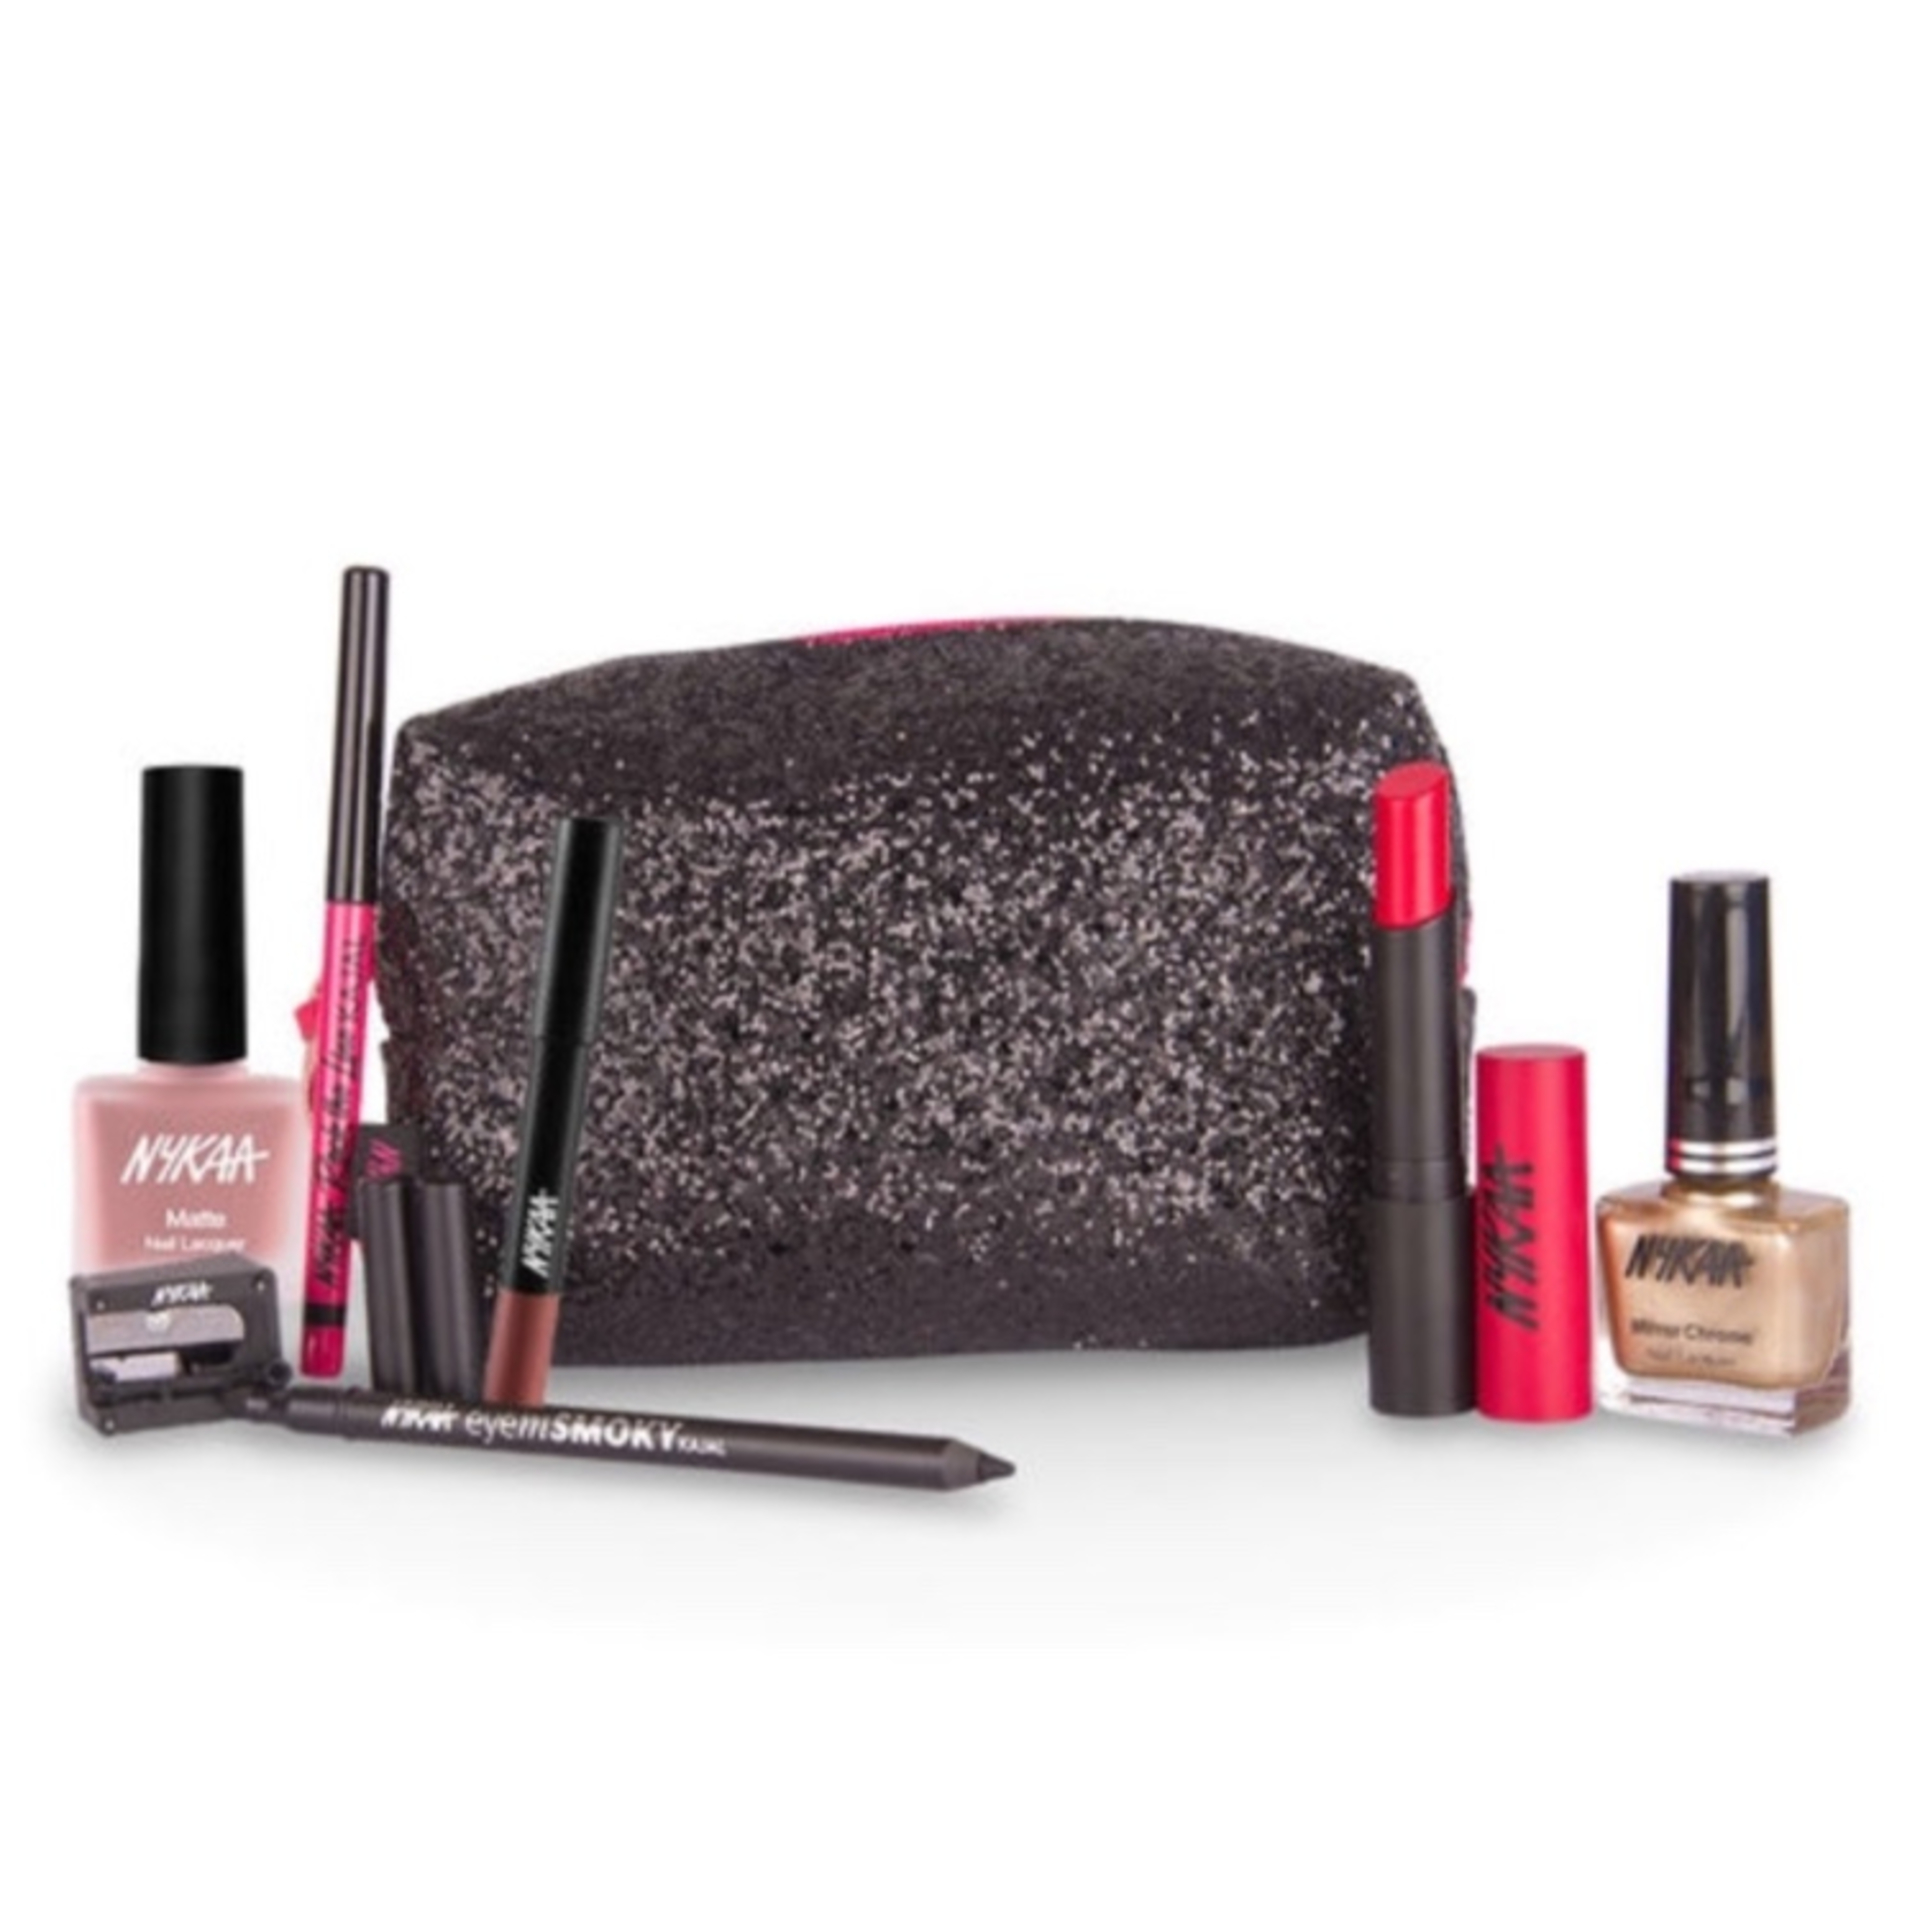 THE GLAM NUT - Nykaa-cocktail-night-glam-combo